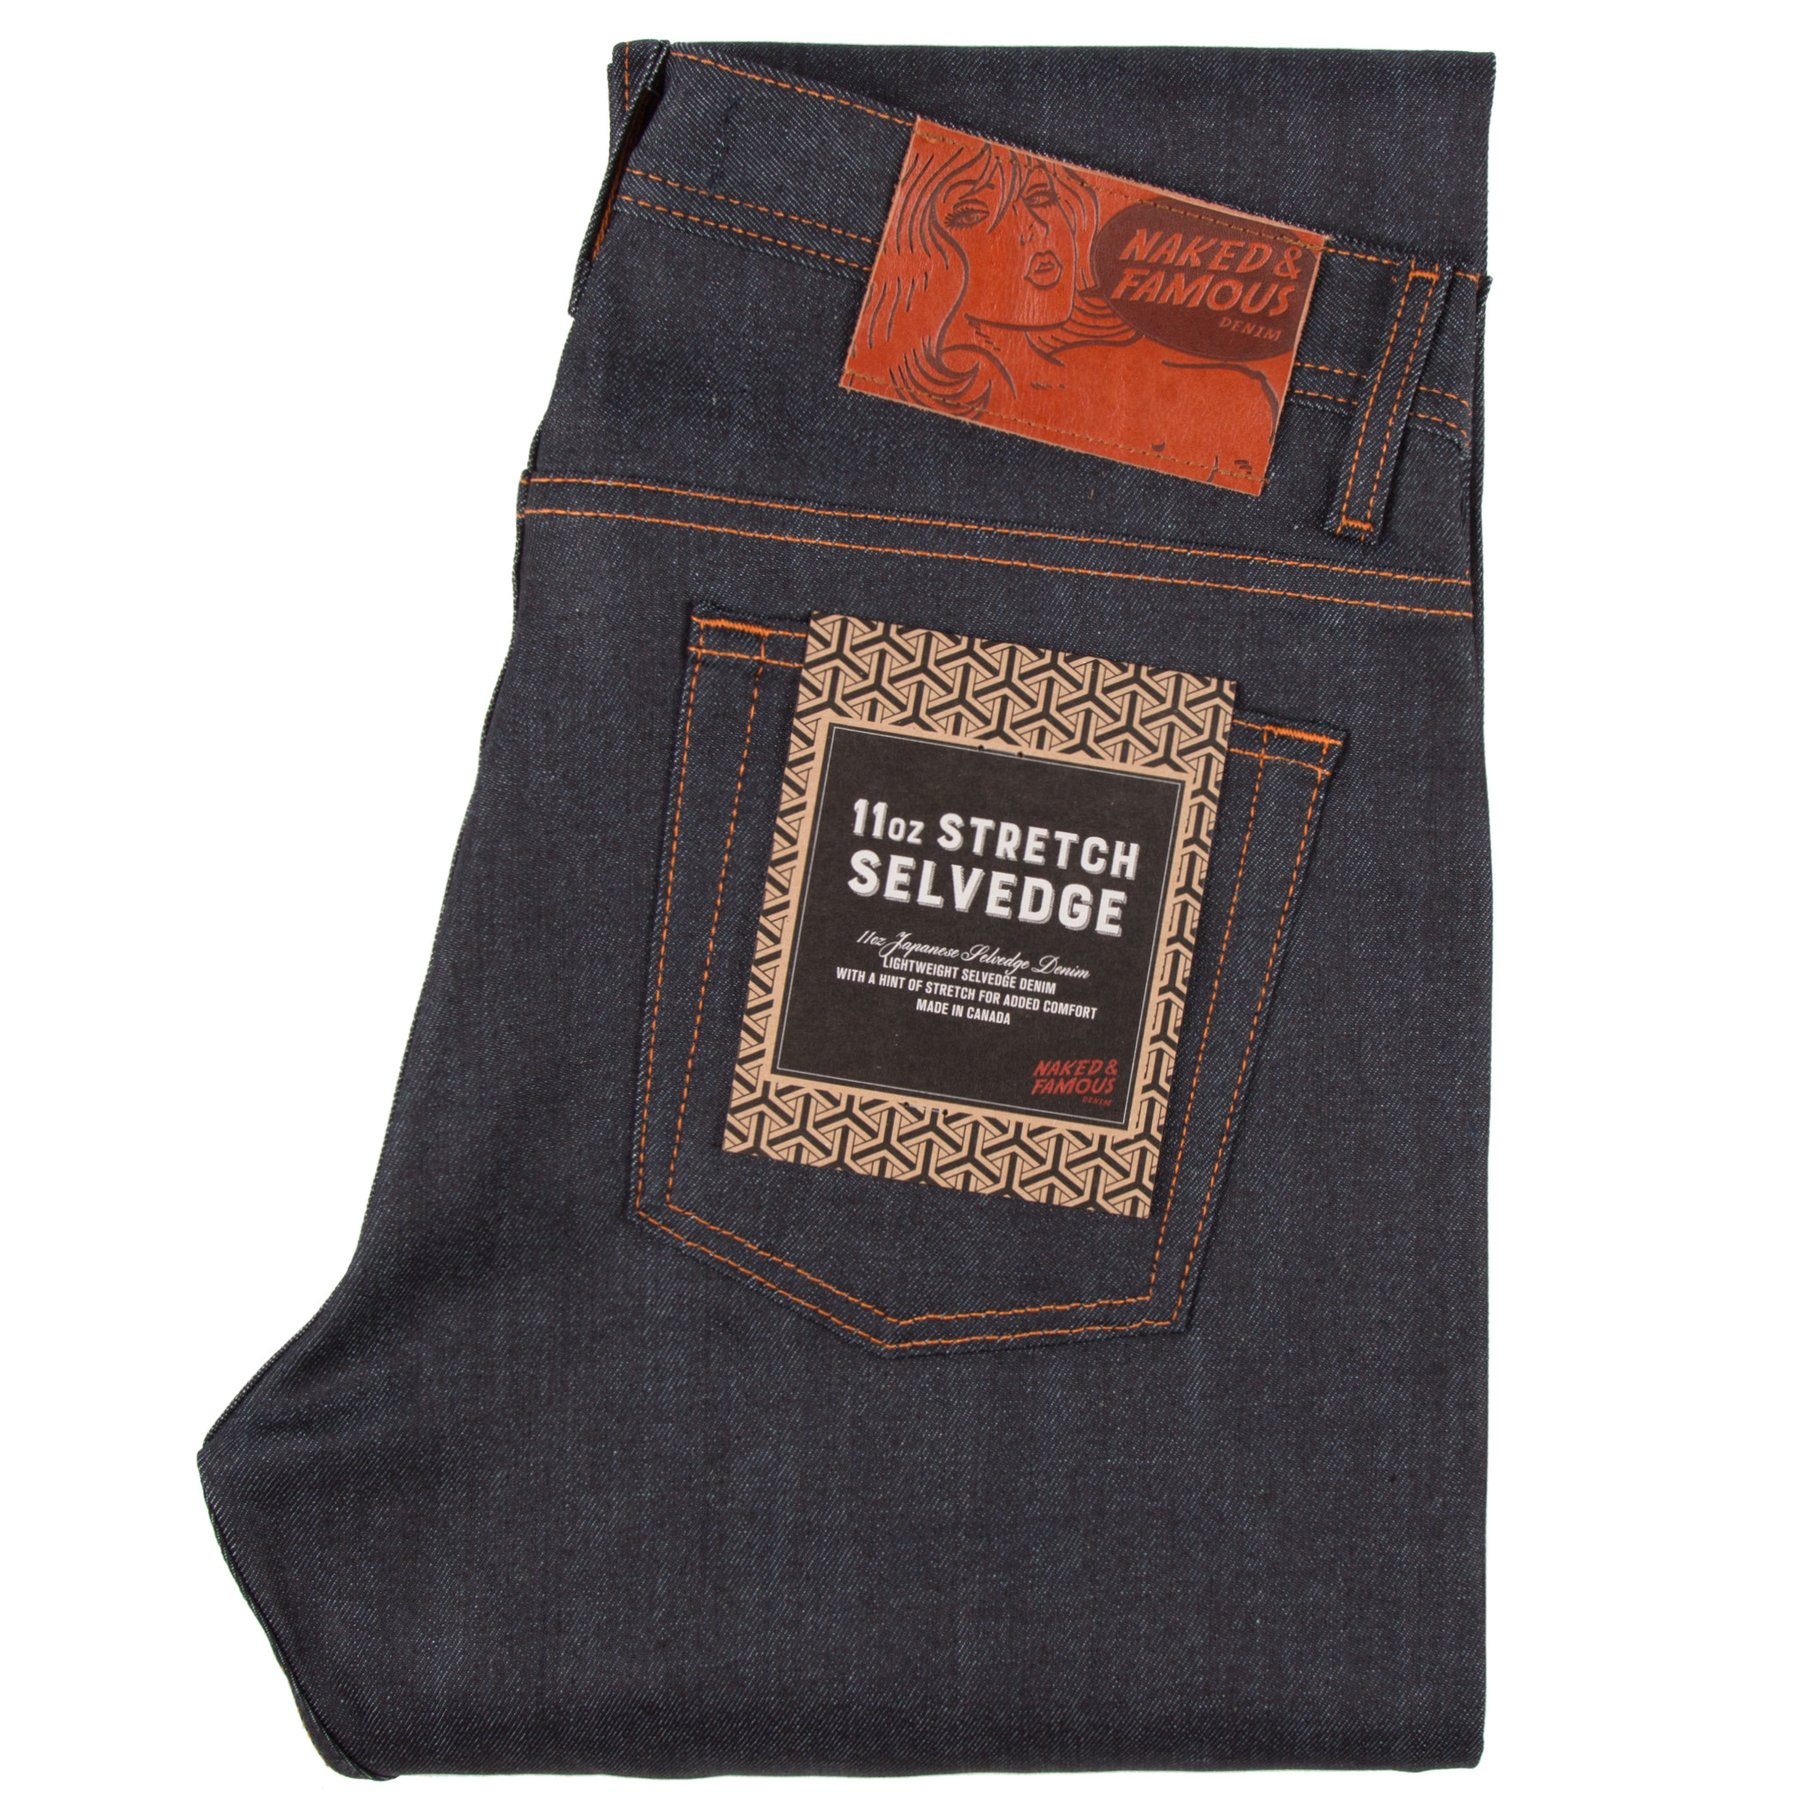 11oz Stretch Selvedge Jeans Folded